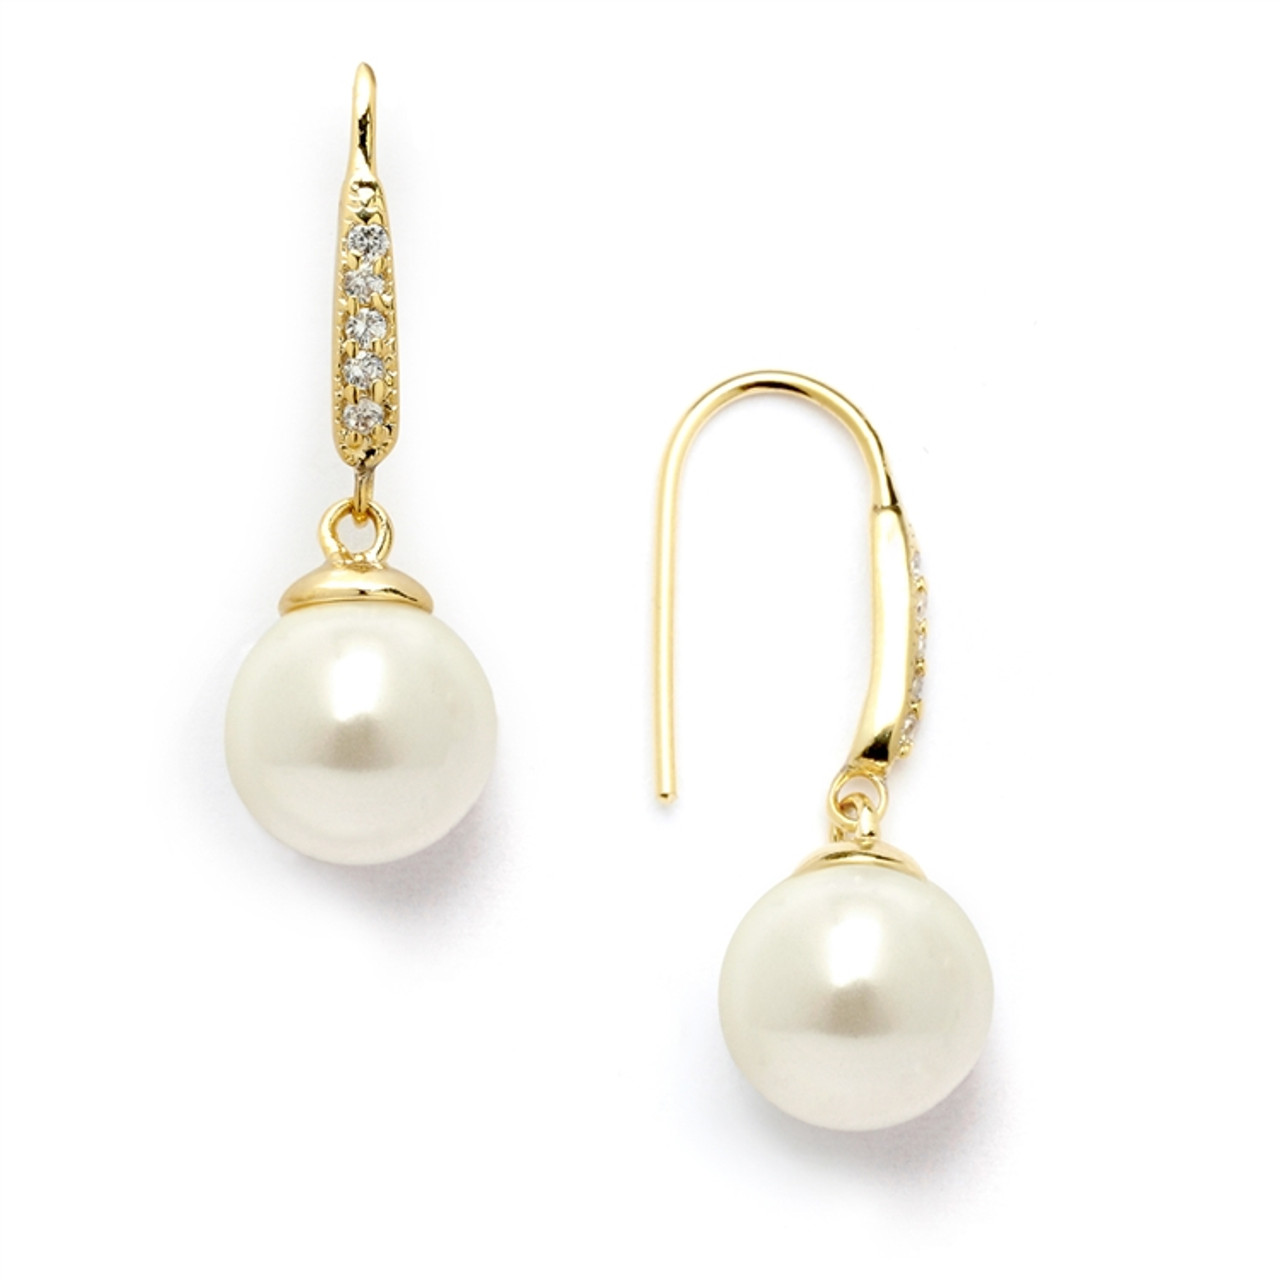 Mariell Vintage French Wire Bridal Earrings with Ivory Pearl Drops and 14K Gold Plated CZ Accents 4560E-I-G